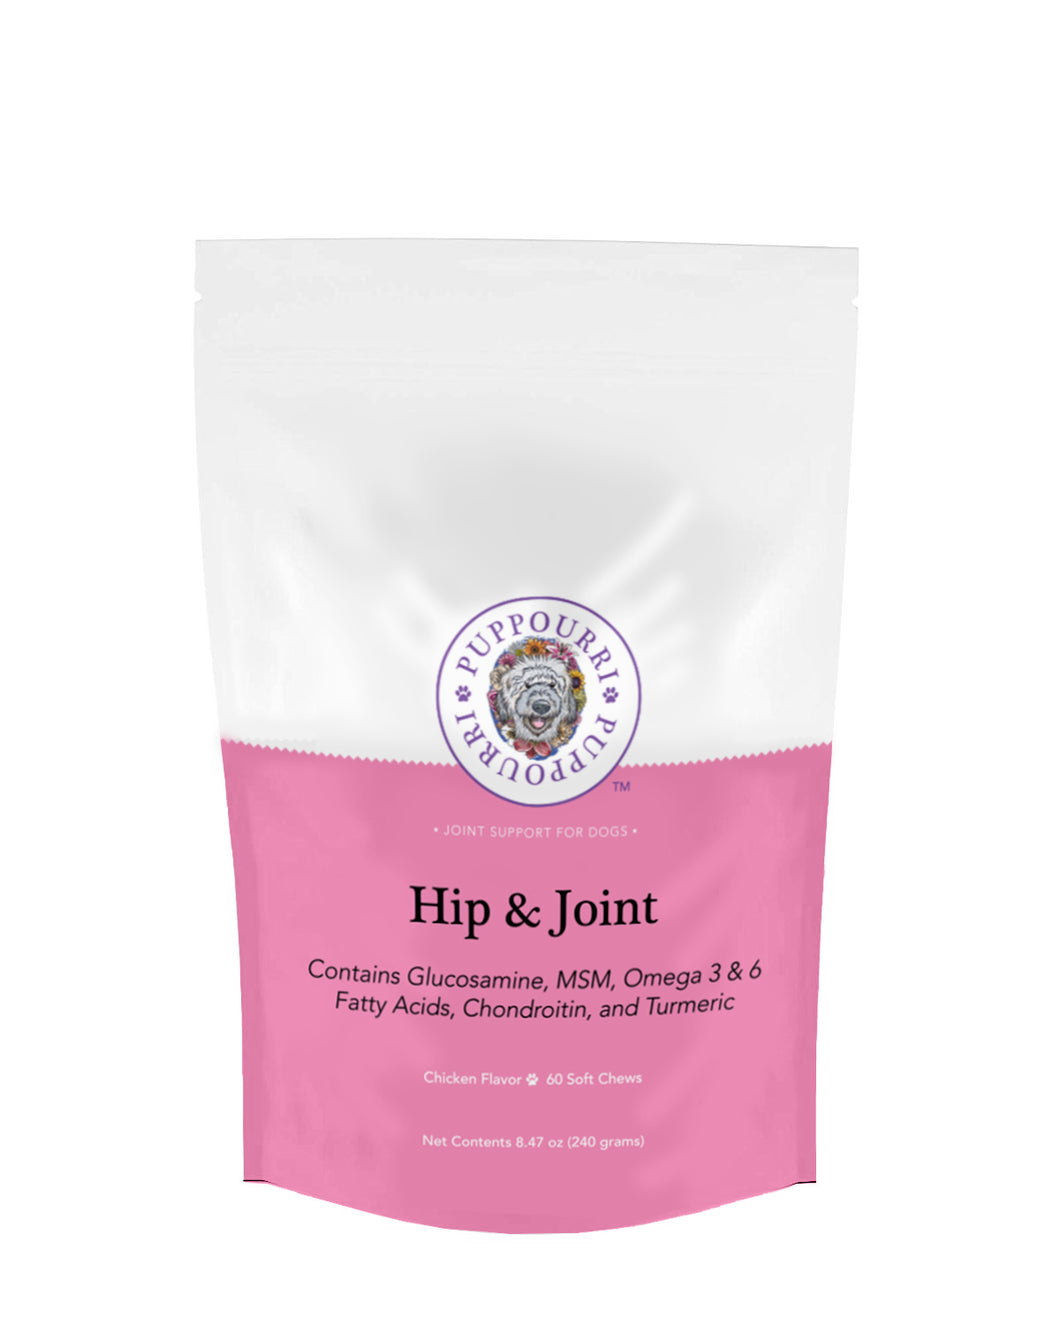 Hip & Joint by Pupourri